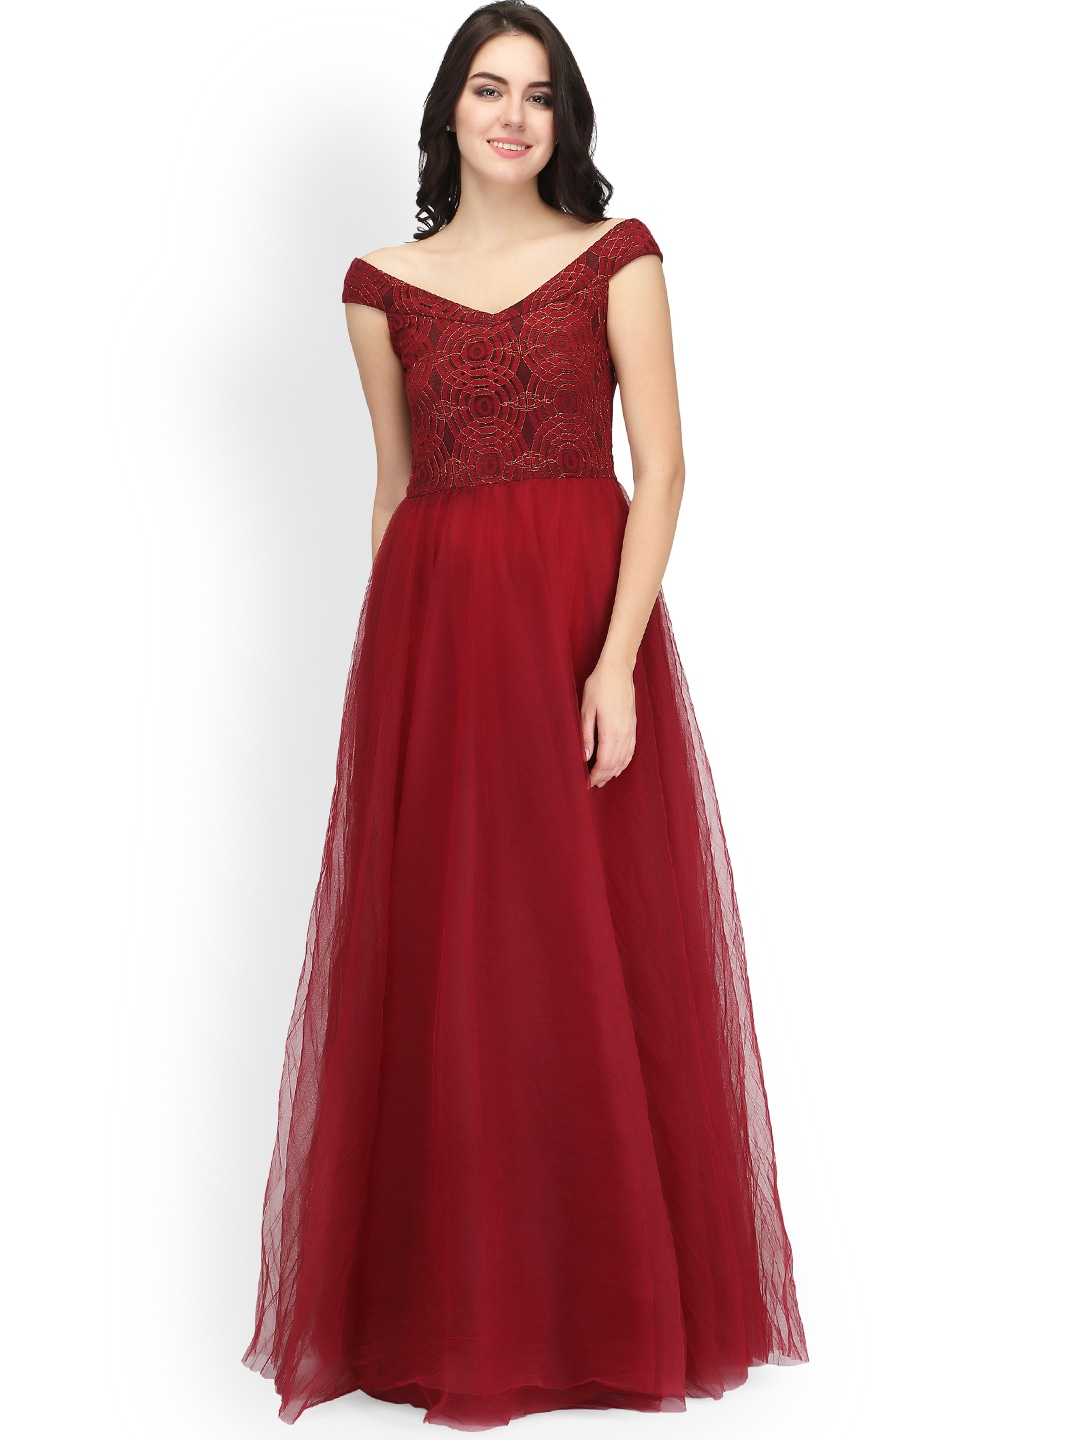 Gowns - Buy Gown for Girls & Women Online in India   Myntra